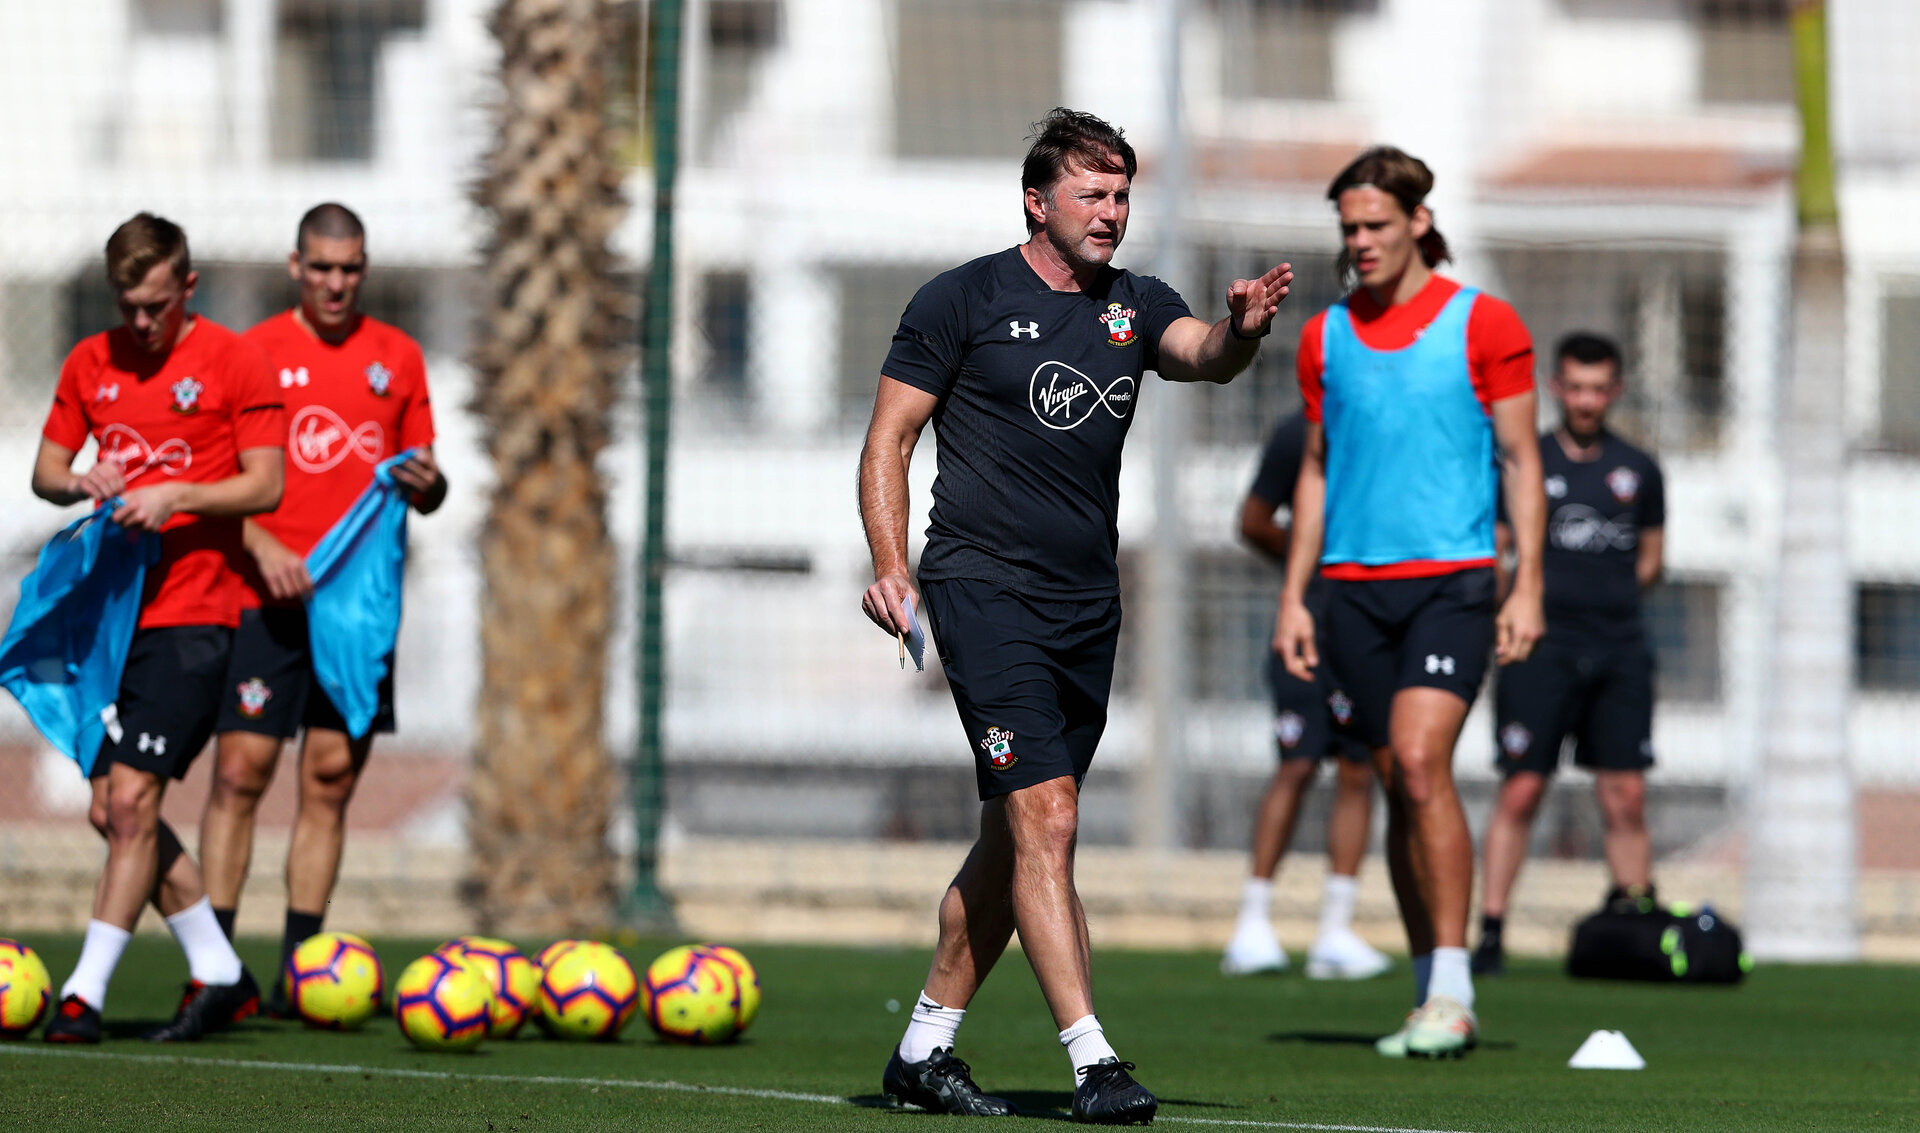 TENERIFE, SPAIN - FEBRUARY 13: Ralph Hasenhuttl on day 3 of Southampton FC's winter training camp on February 13, 2019 in Tenerife, Spain. (Photo by Matt Watson/Southampton FC via Getty Images)